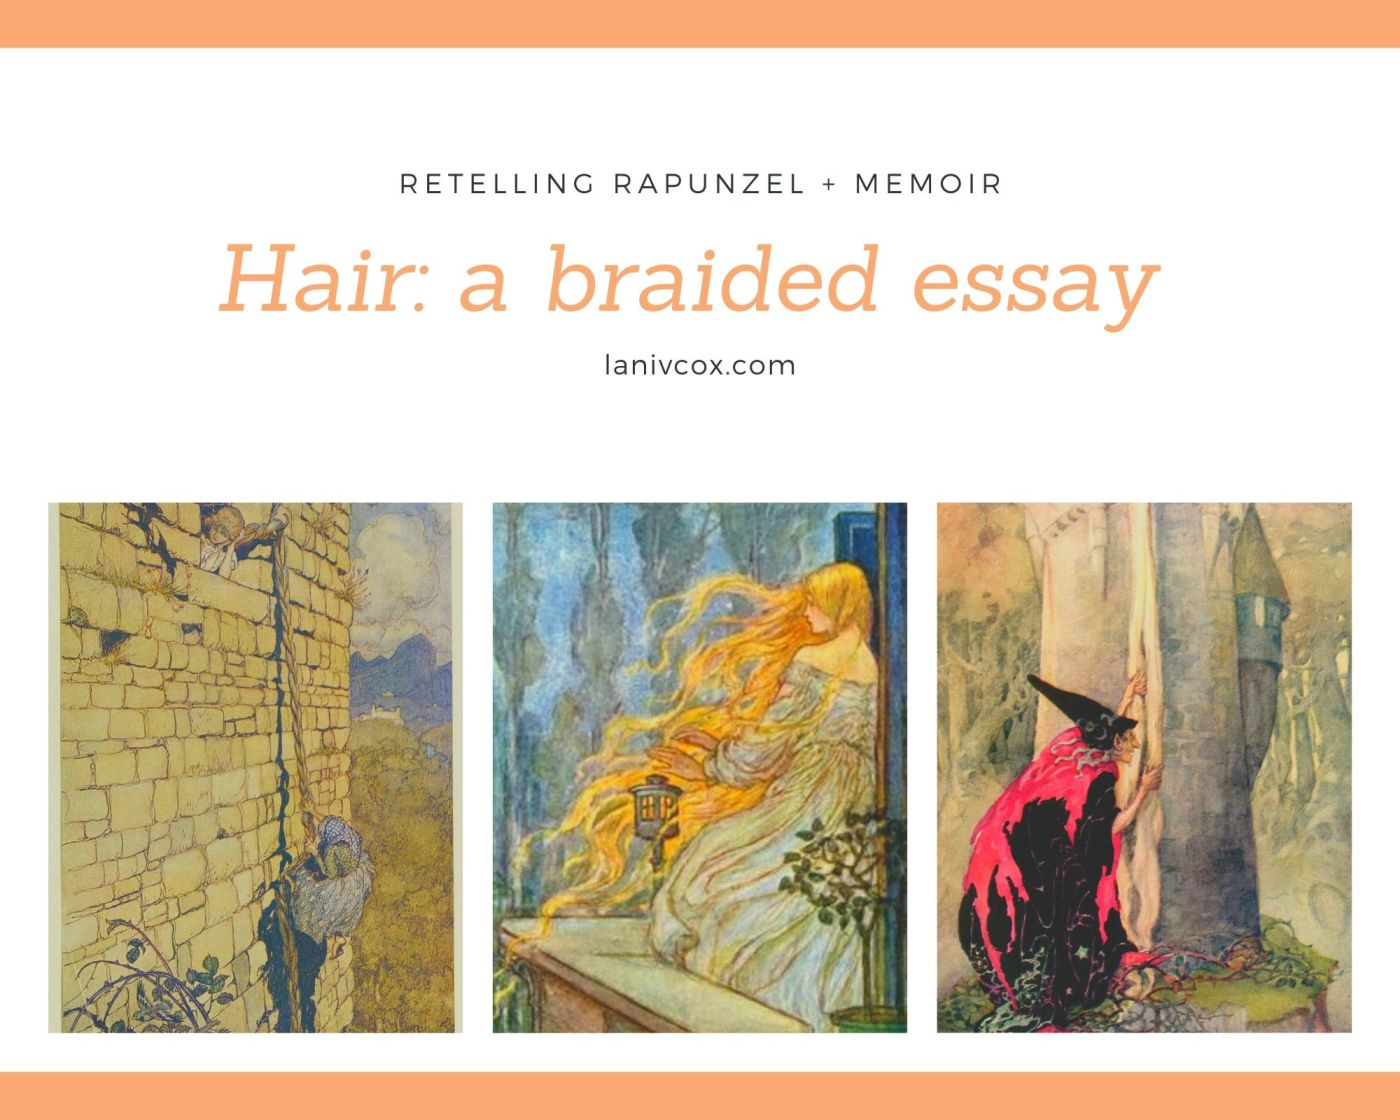 Hair: a braided essay